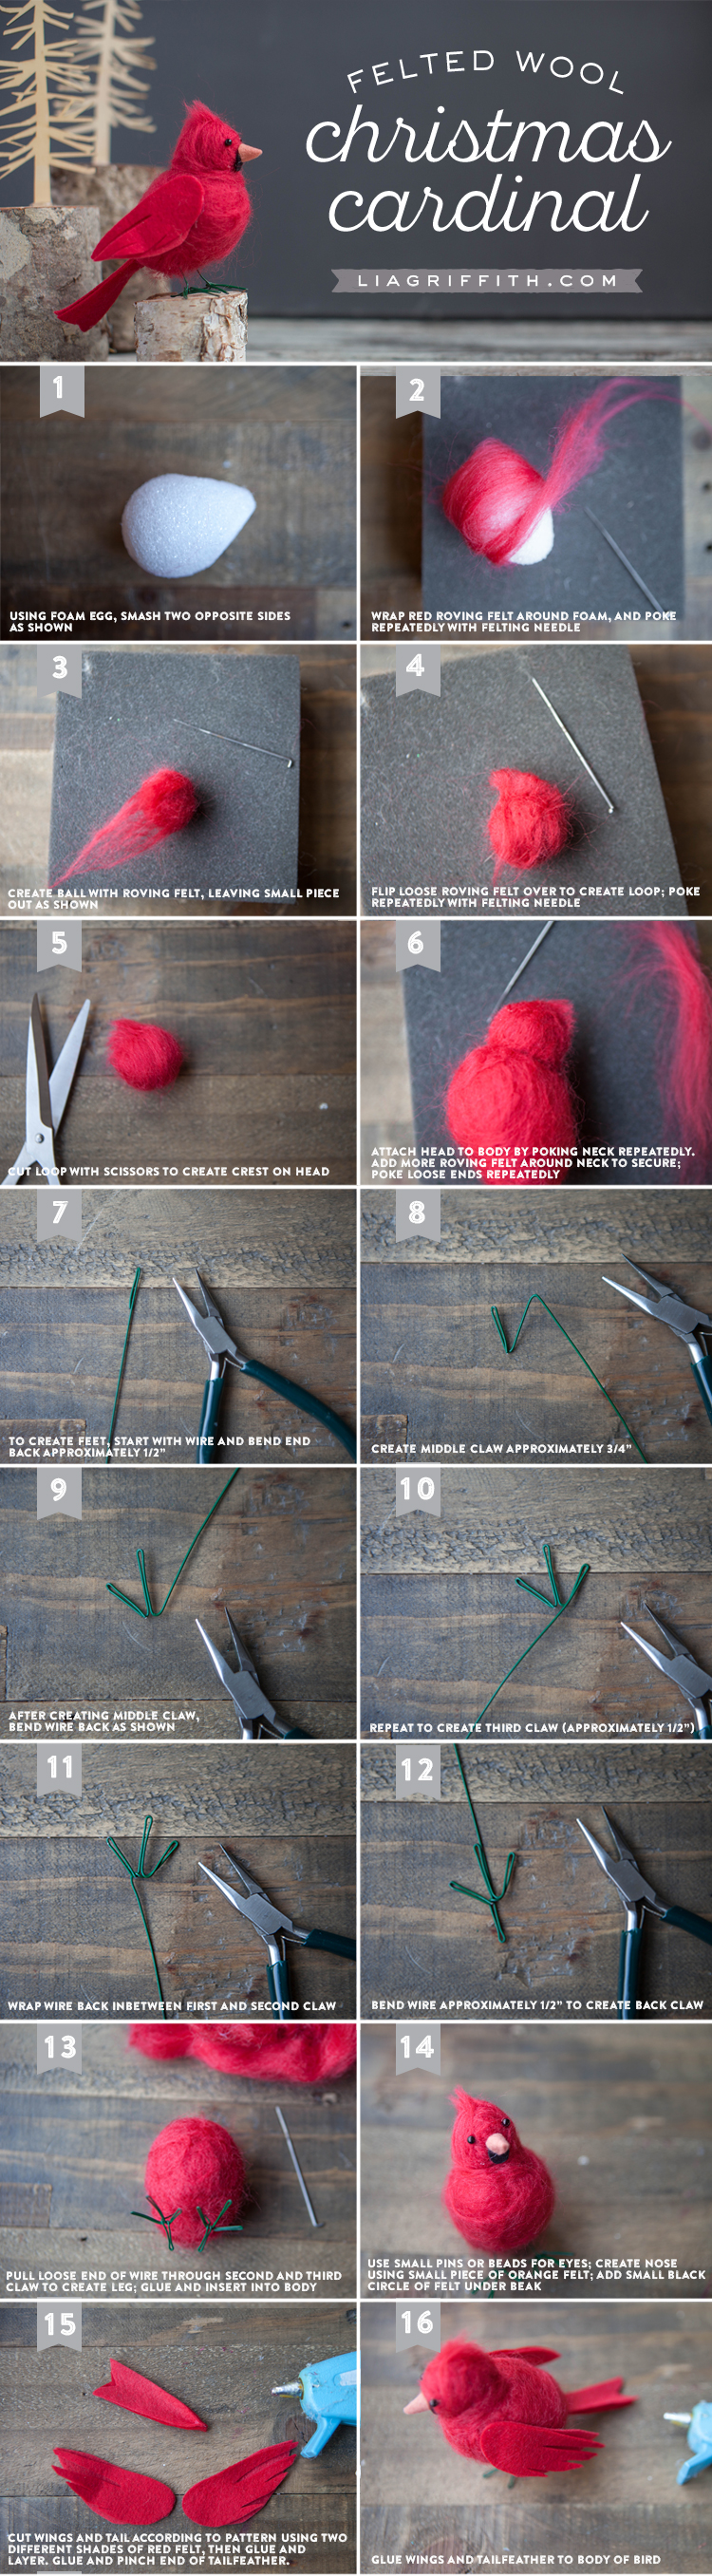 Photo tutorial for red felted cardinal bird by Lia Griffith